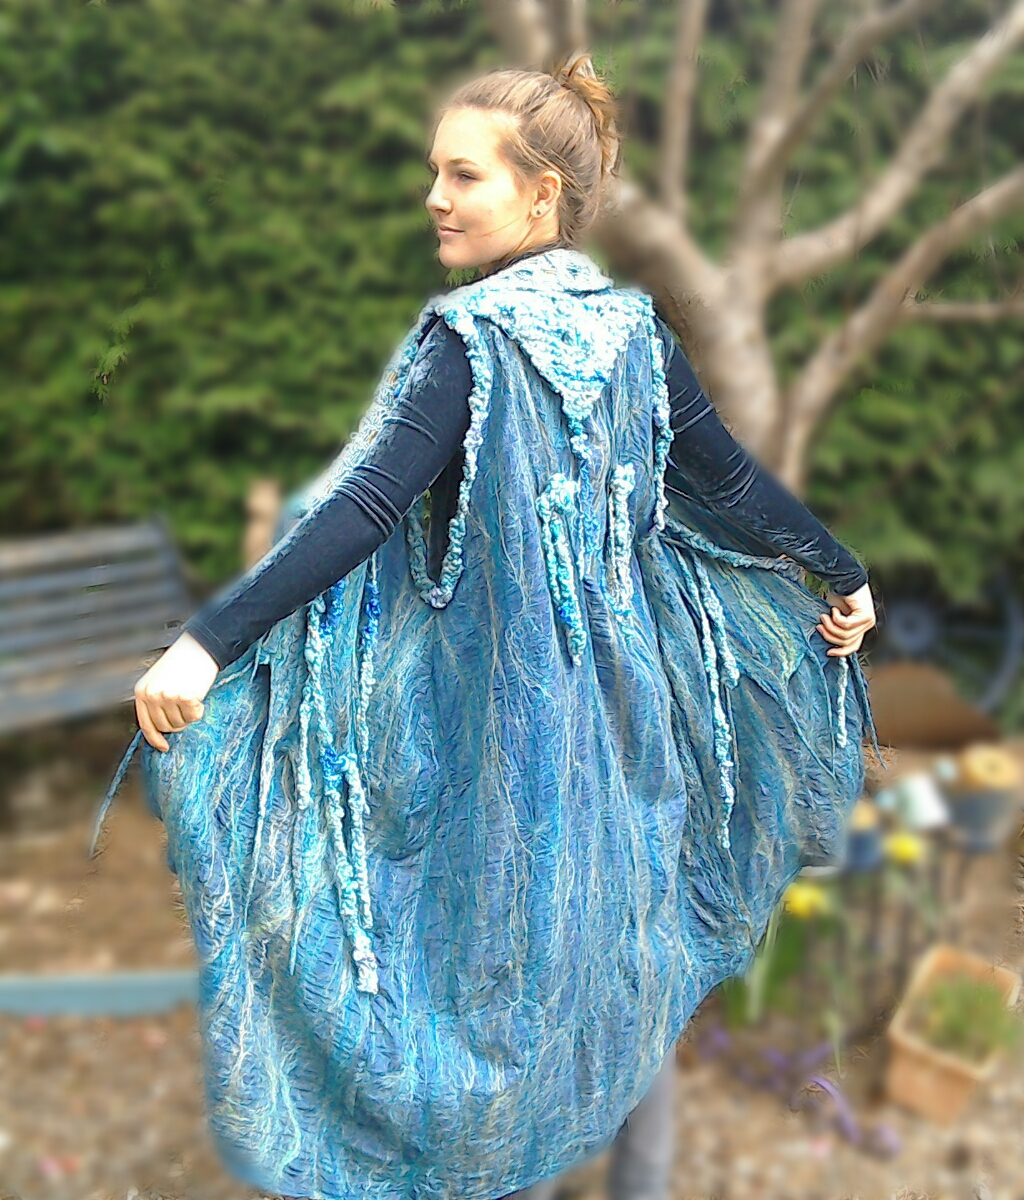 The Mermaid's Gown